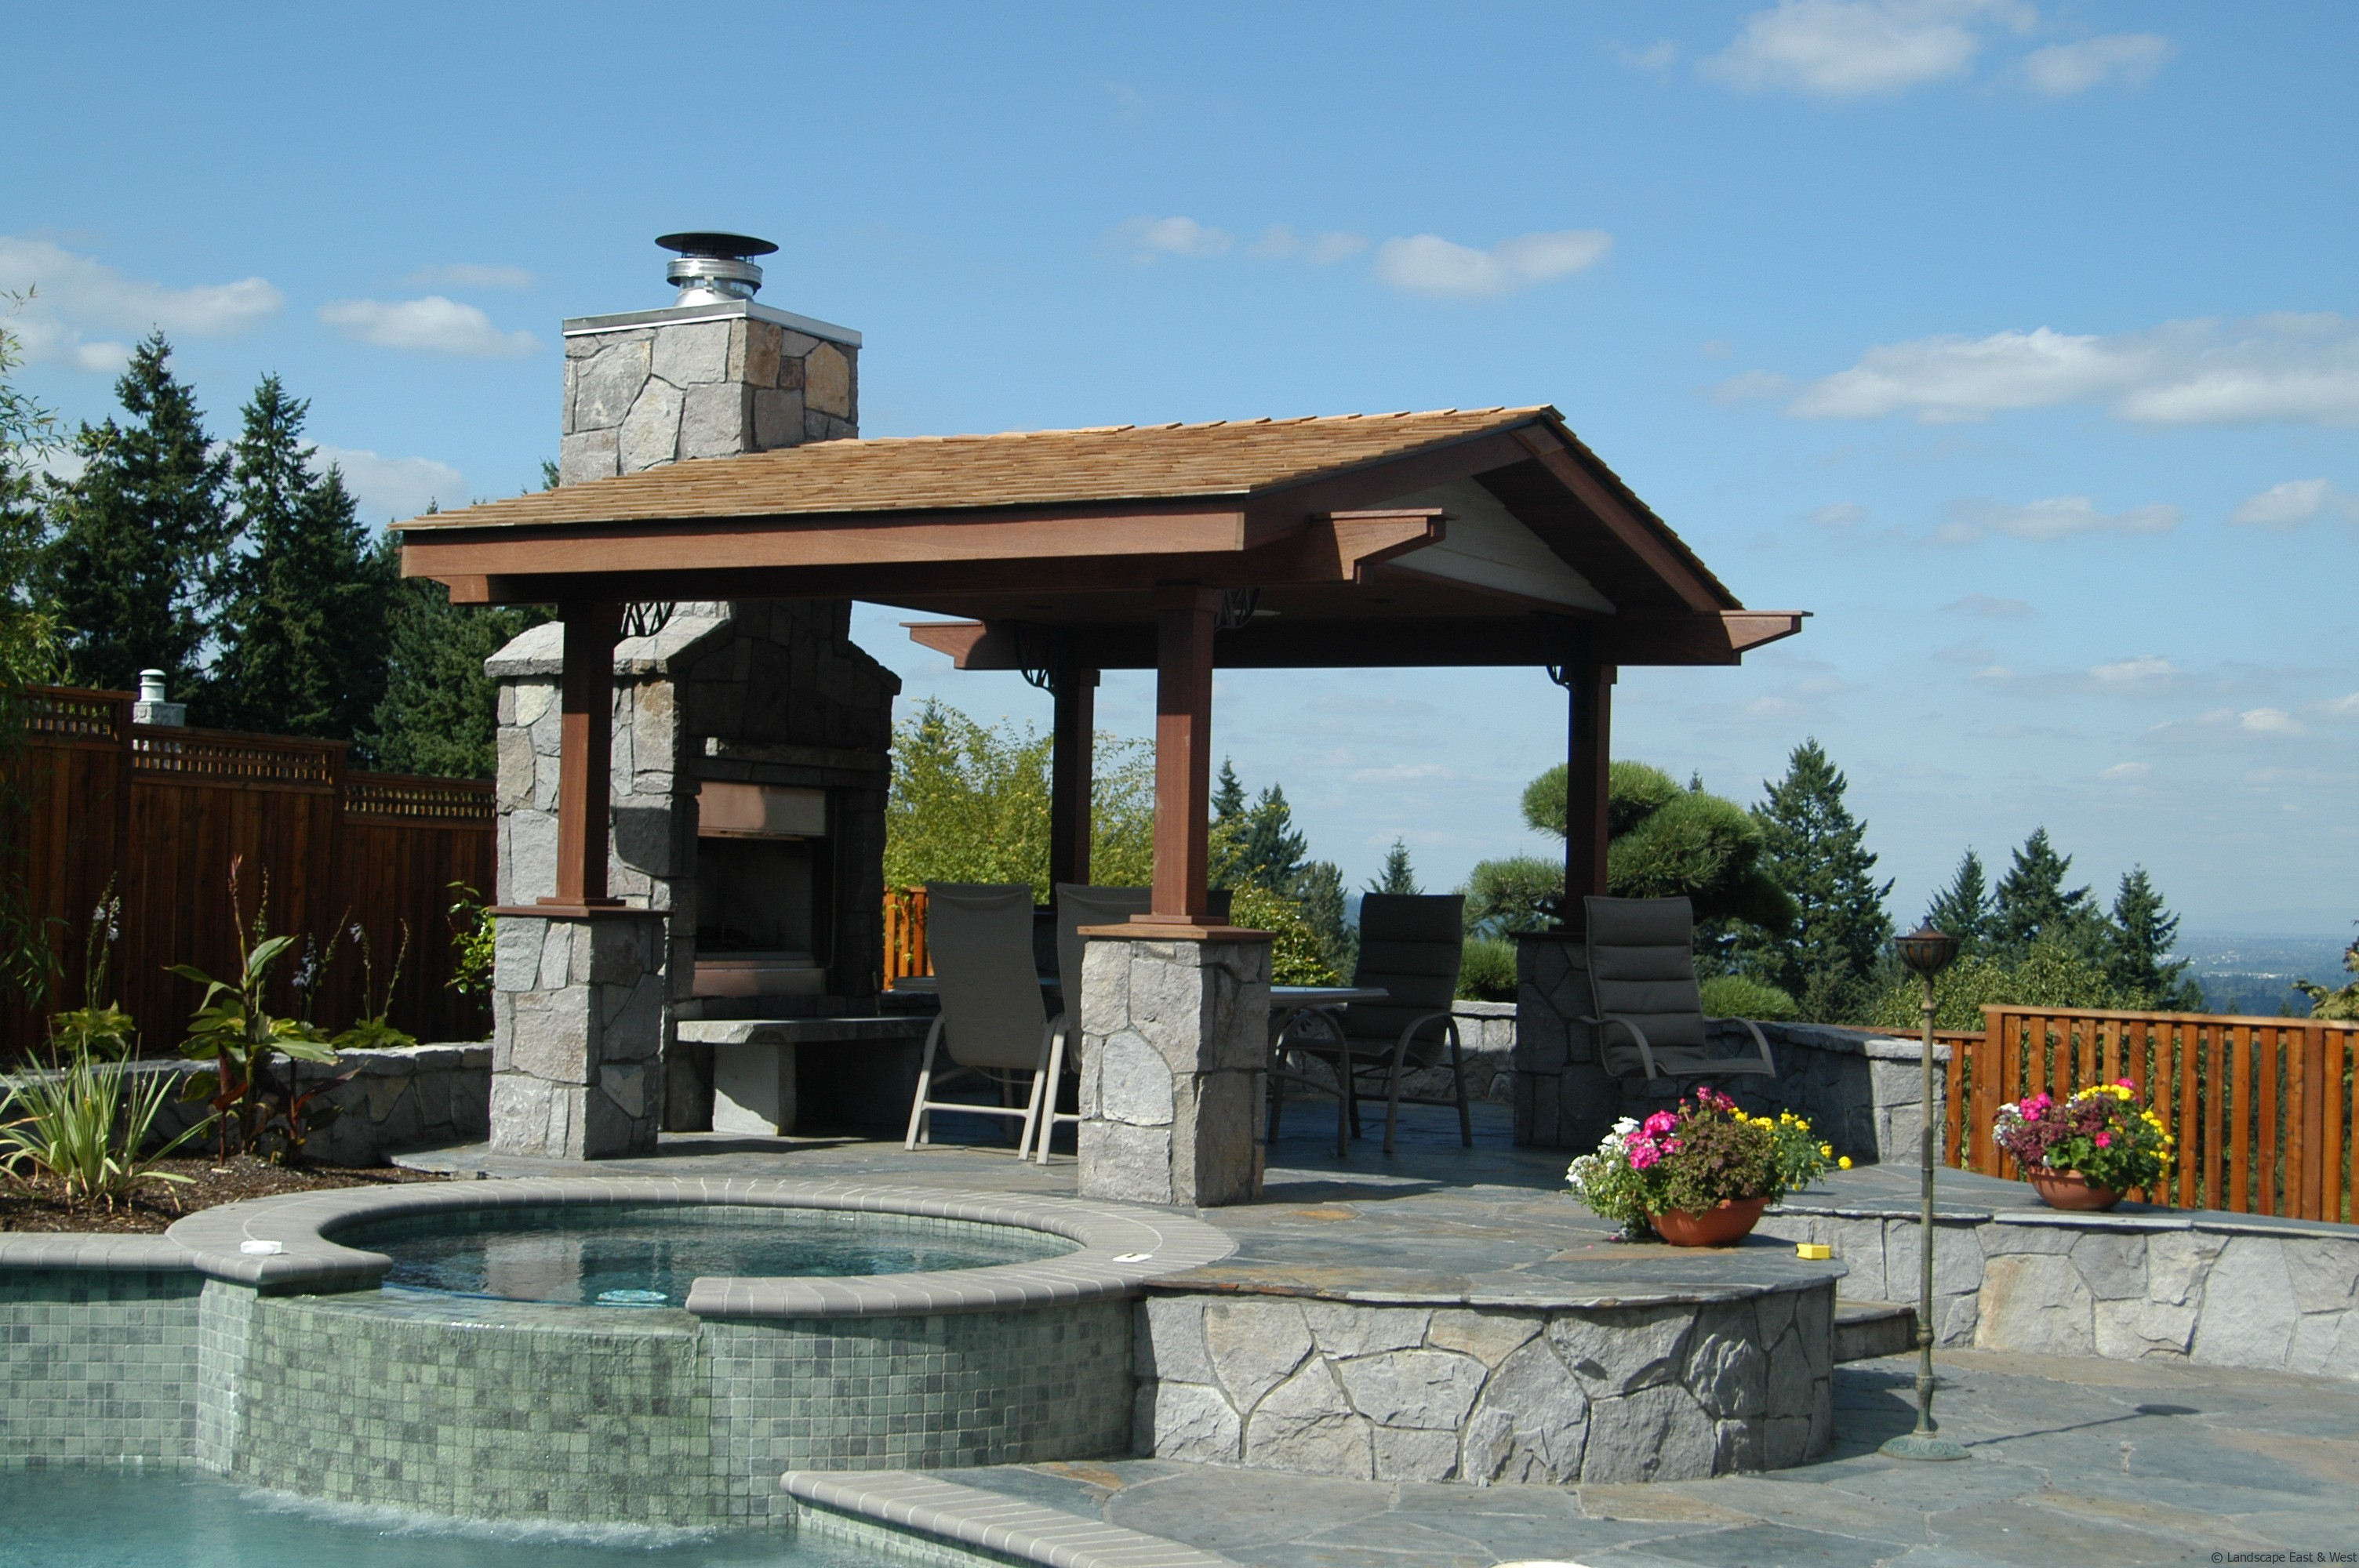 Pergola Designs Choosing The Right Covered Structure Or Pergola Design By Bjorn